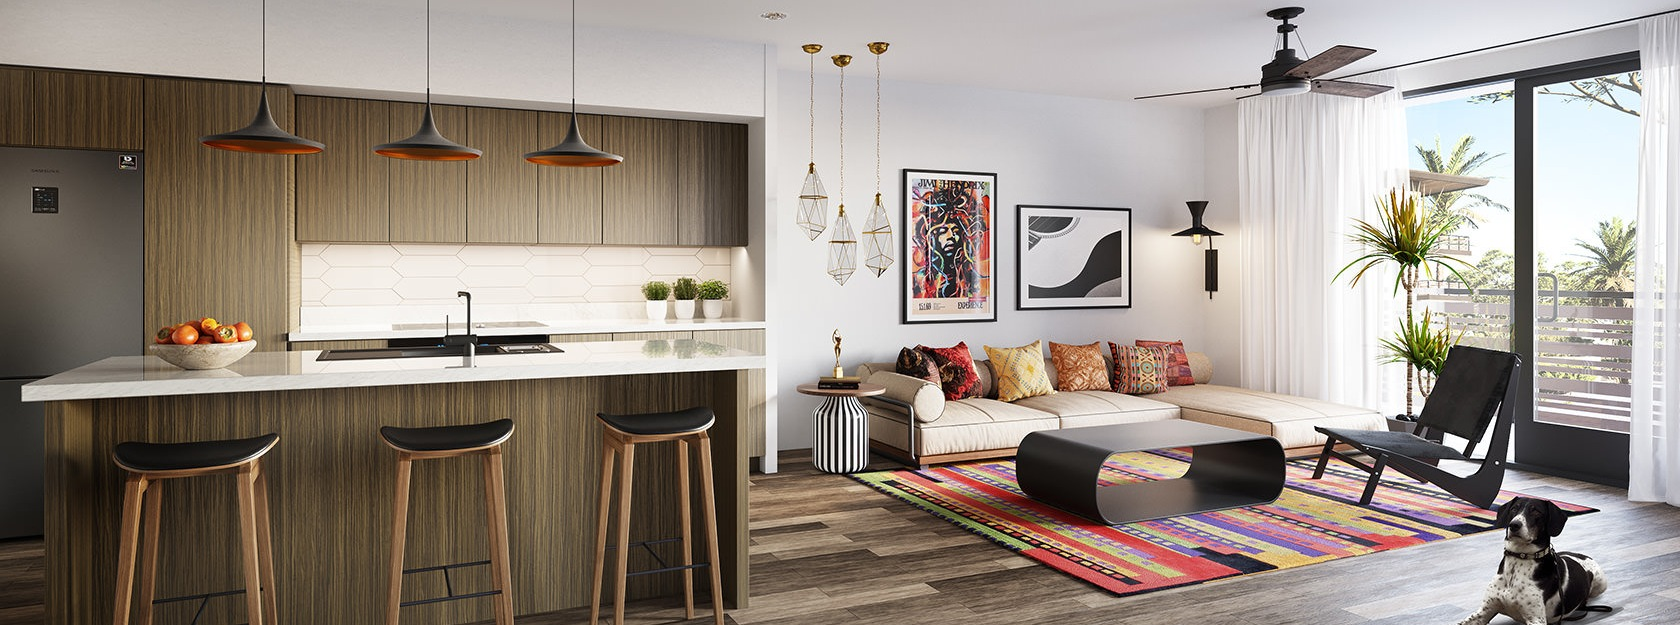 open concept apartment layout with ample lighting throughout